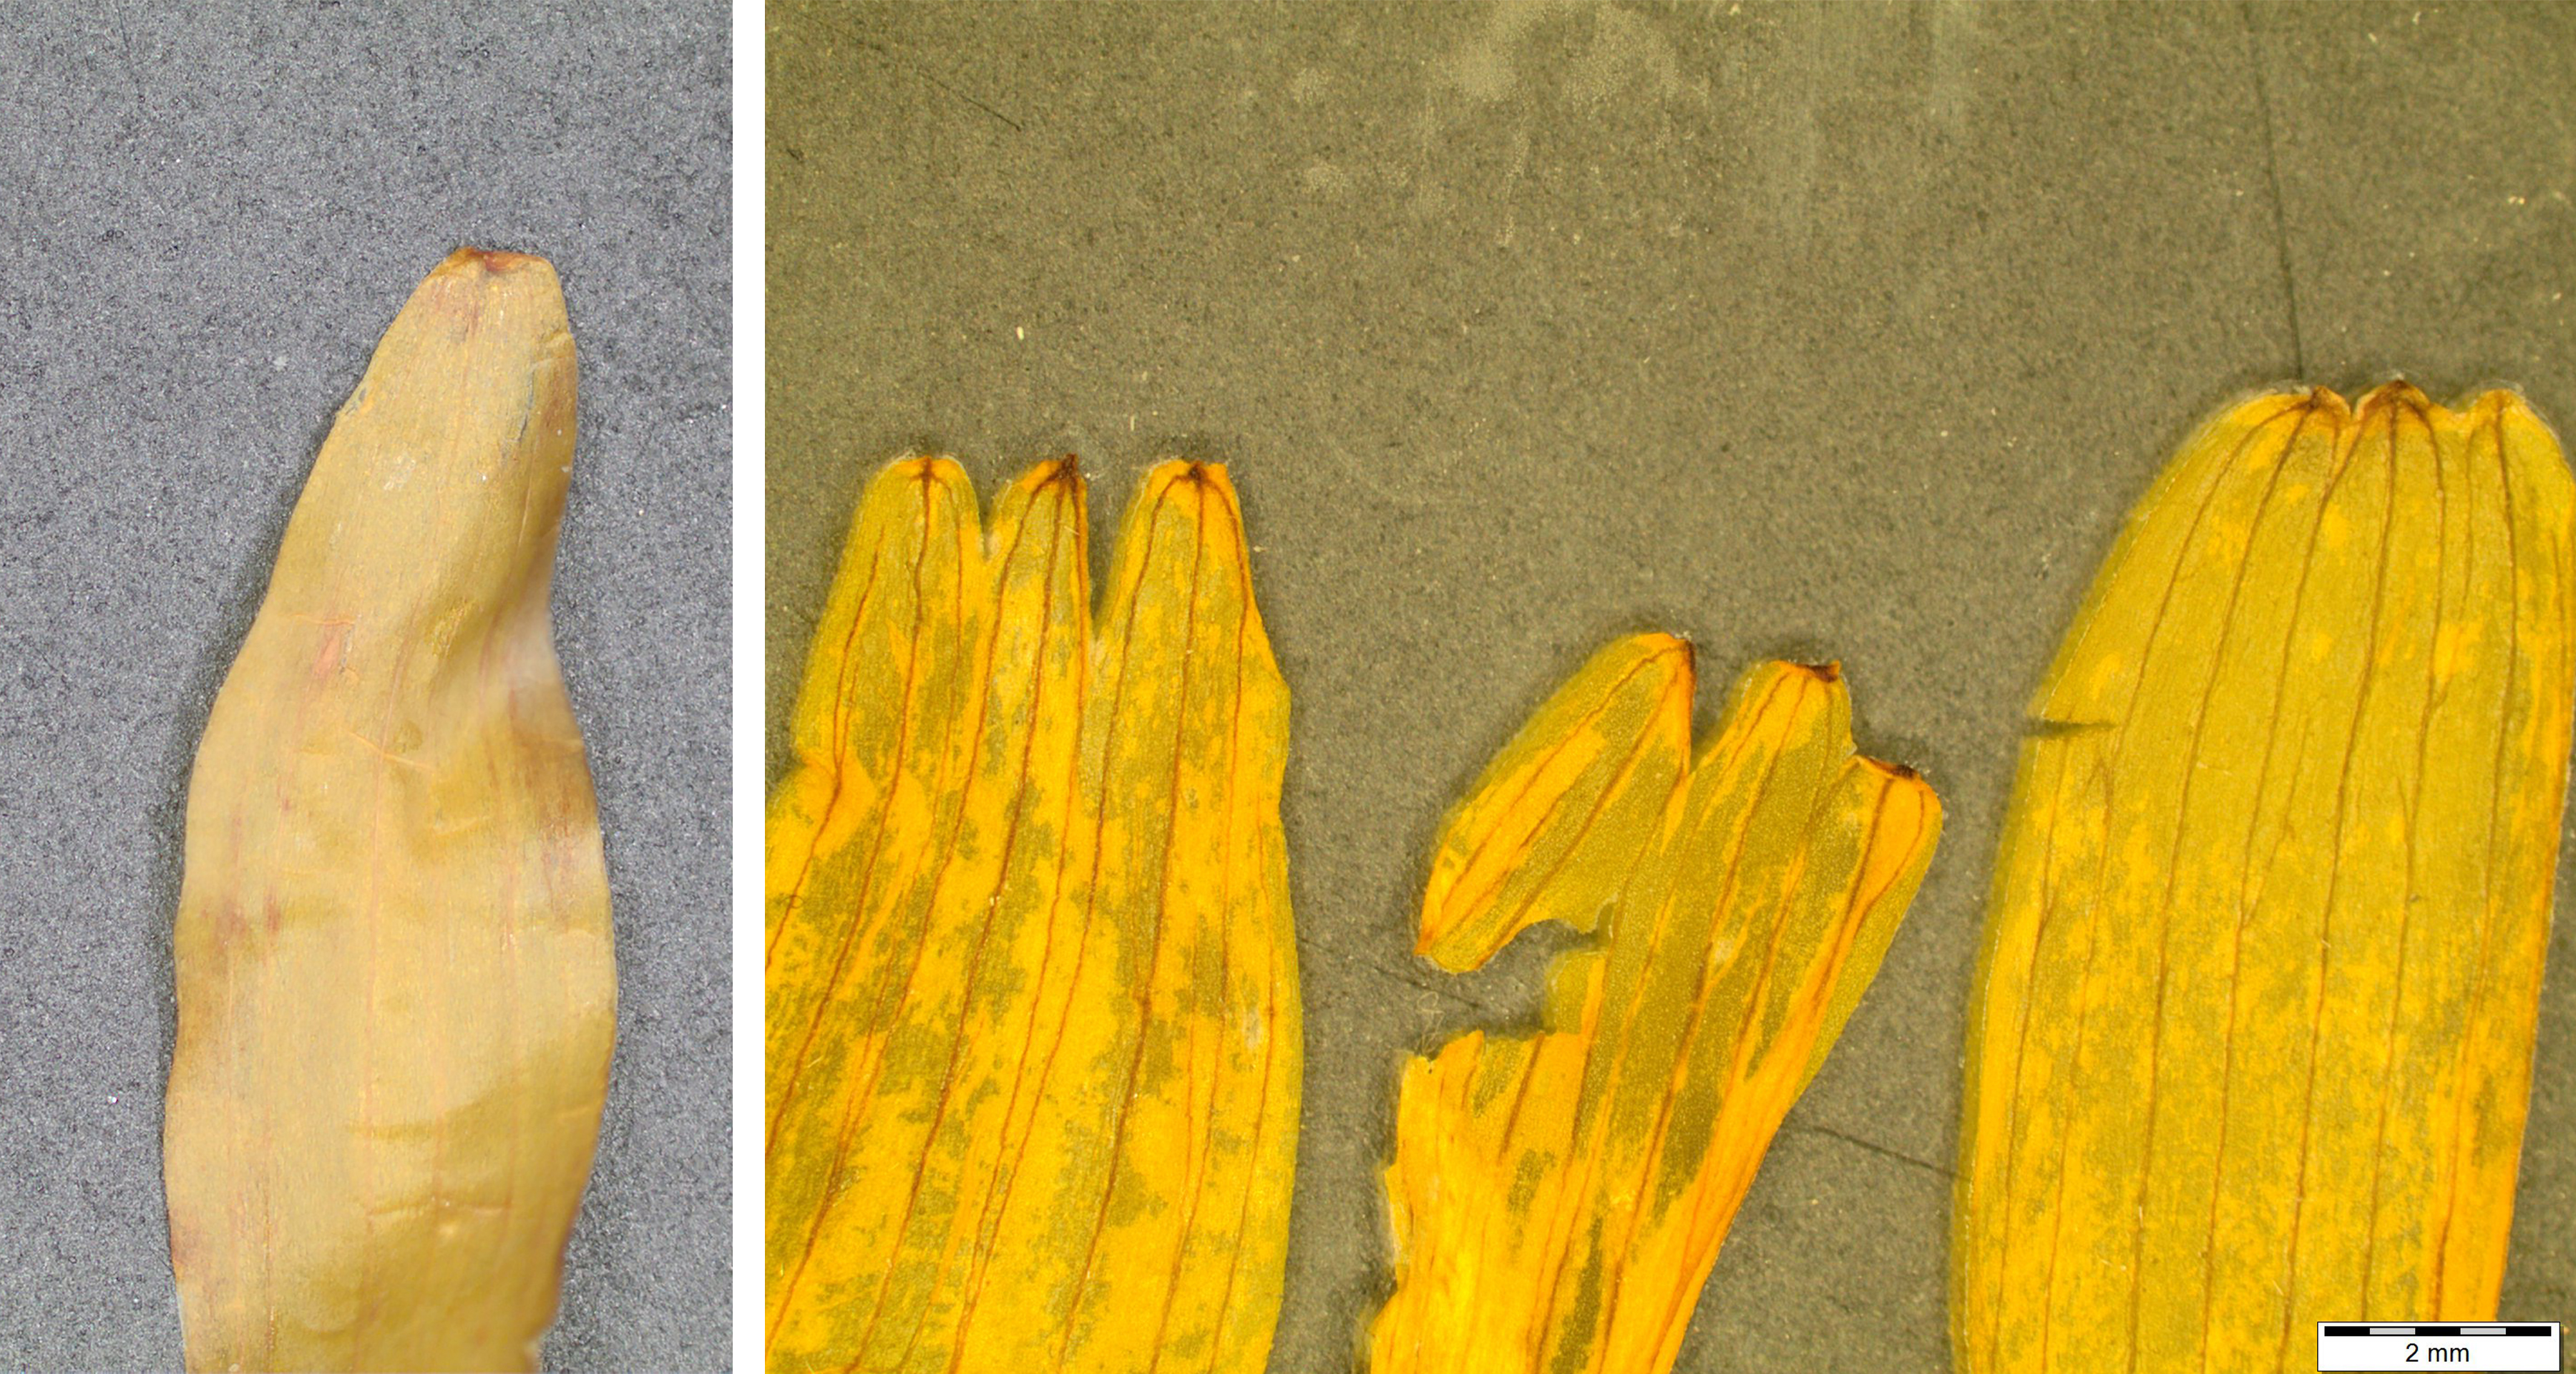 Macroscopic images of two botanicals help Mountain Rose Herbs' quality control team correctly identify plant species before making them available for purchase. Here are samples of Arnica montana and false Mexican arnica.